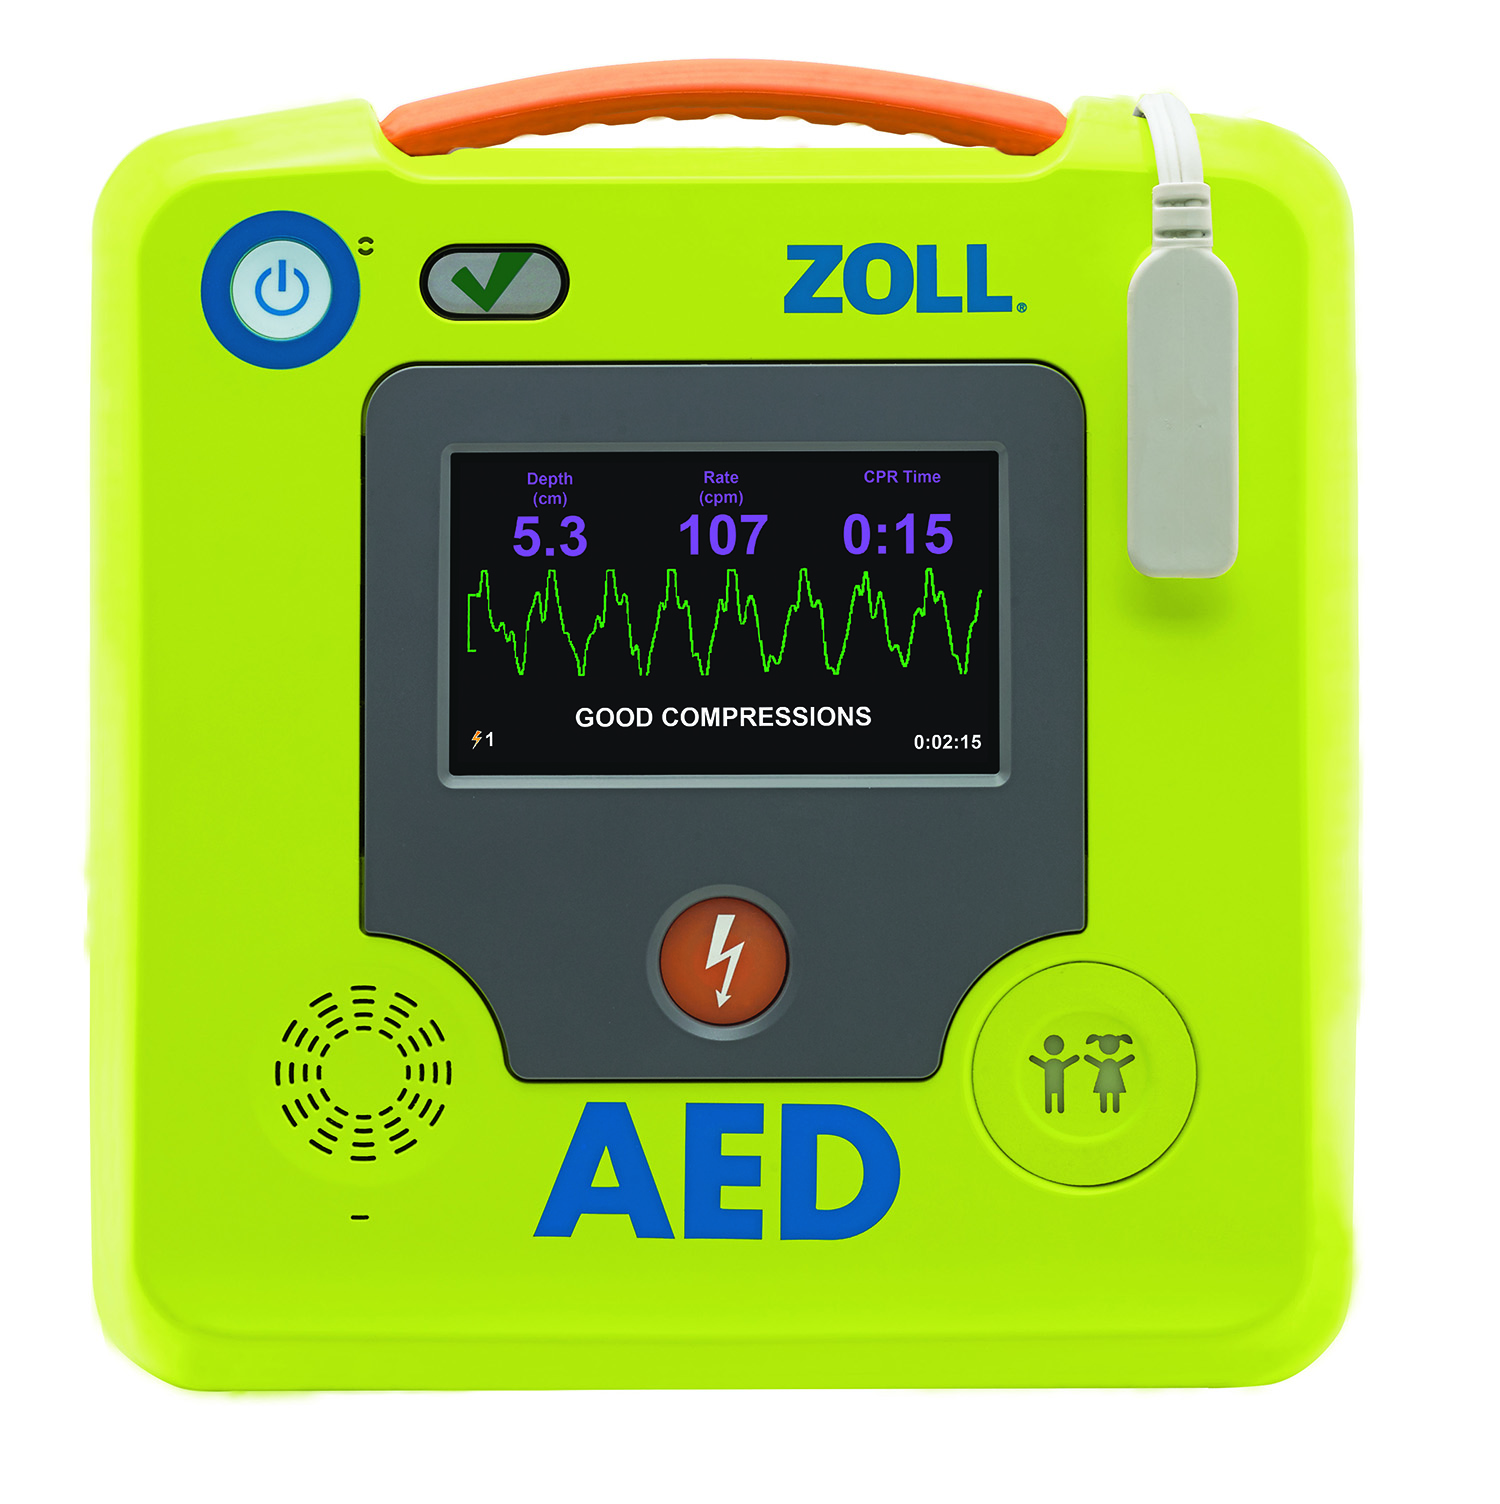 ZOLL AED 3 BLS-image